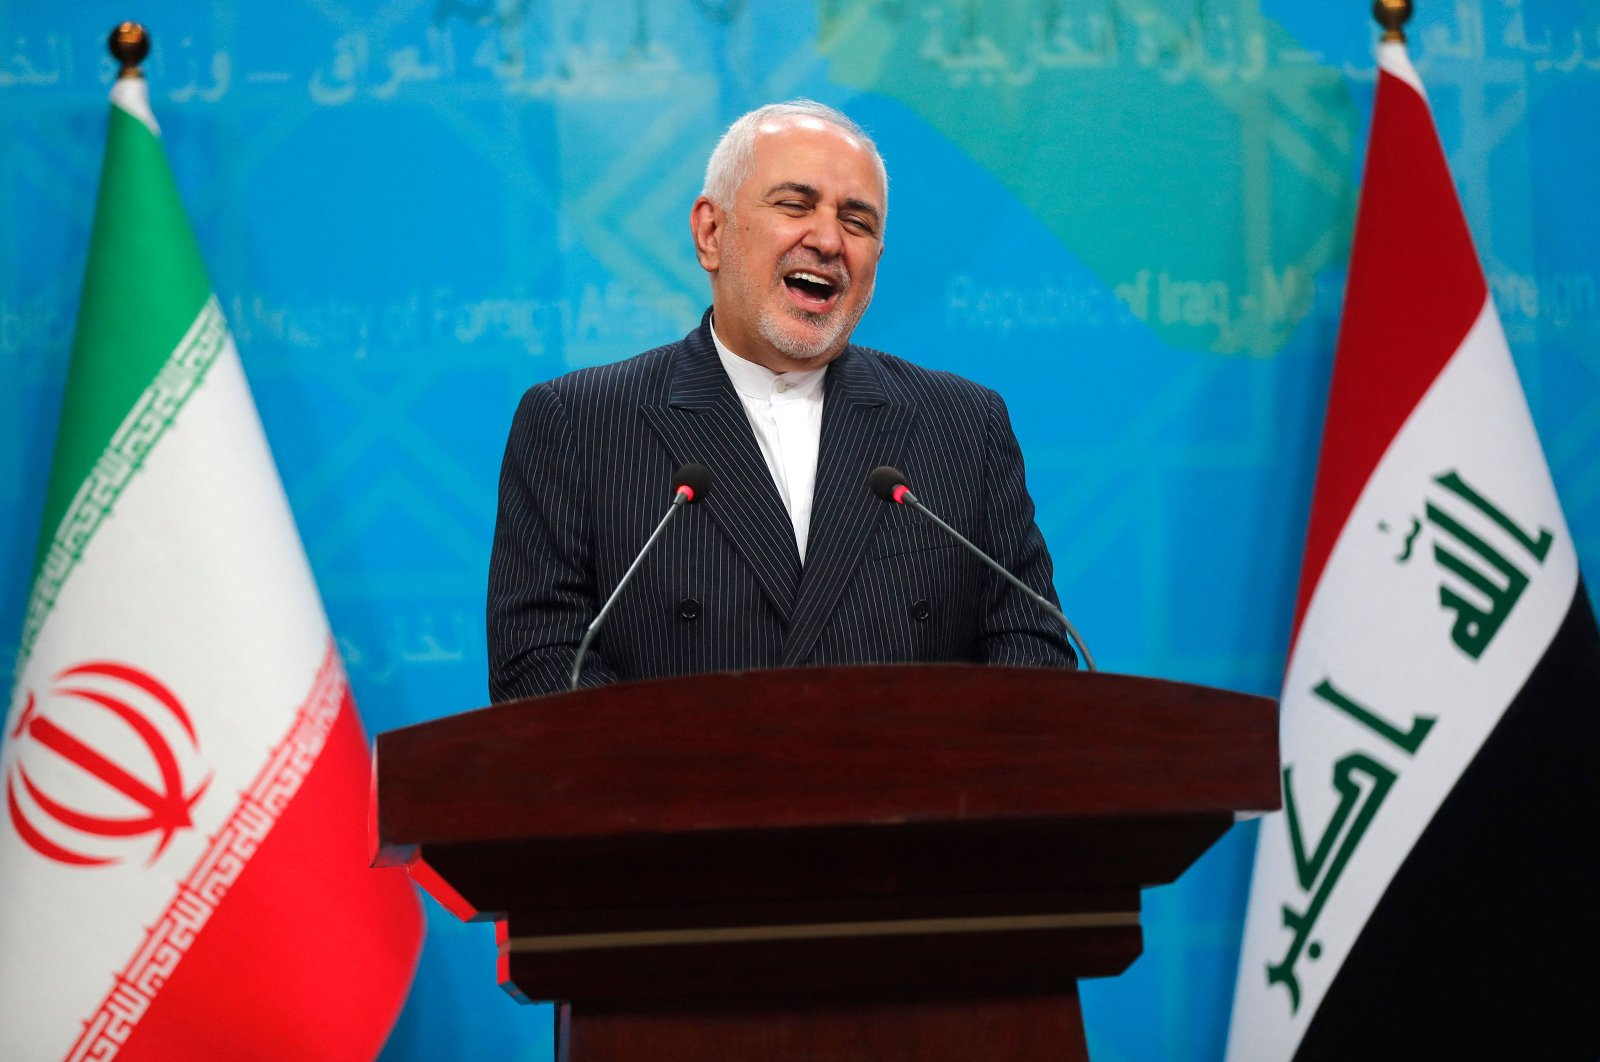 Iranian Foreign Minister Mohammad Javad Zarif speaks during a joint press conference with his Iraqi counterpart in Iraq's capital Baghdad, April 26, 2021. (AFP Photo)